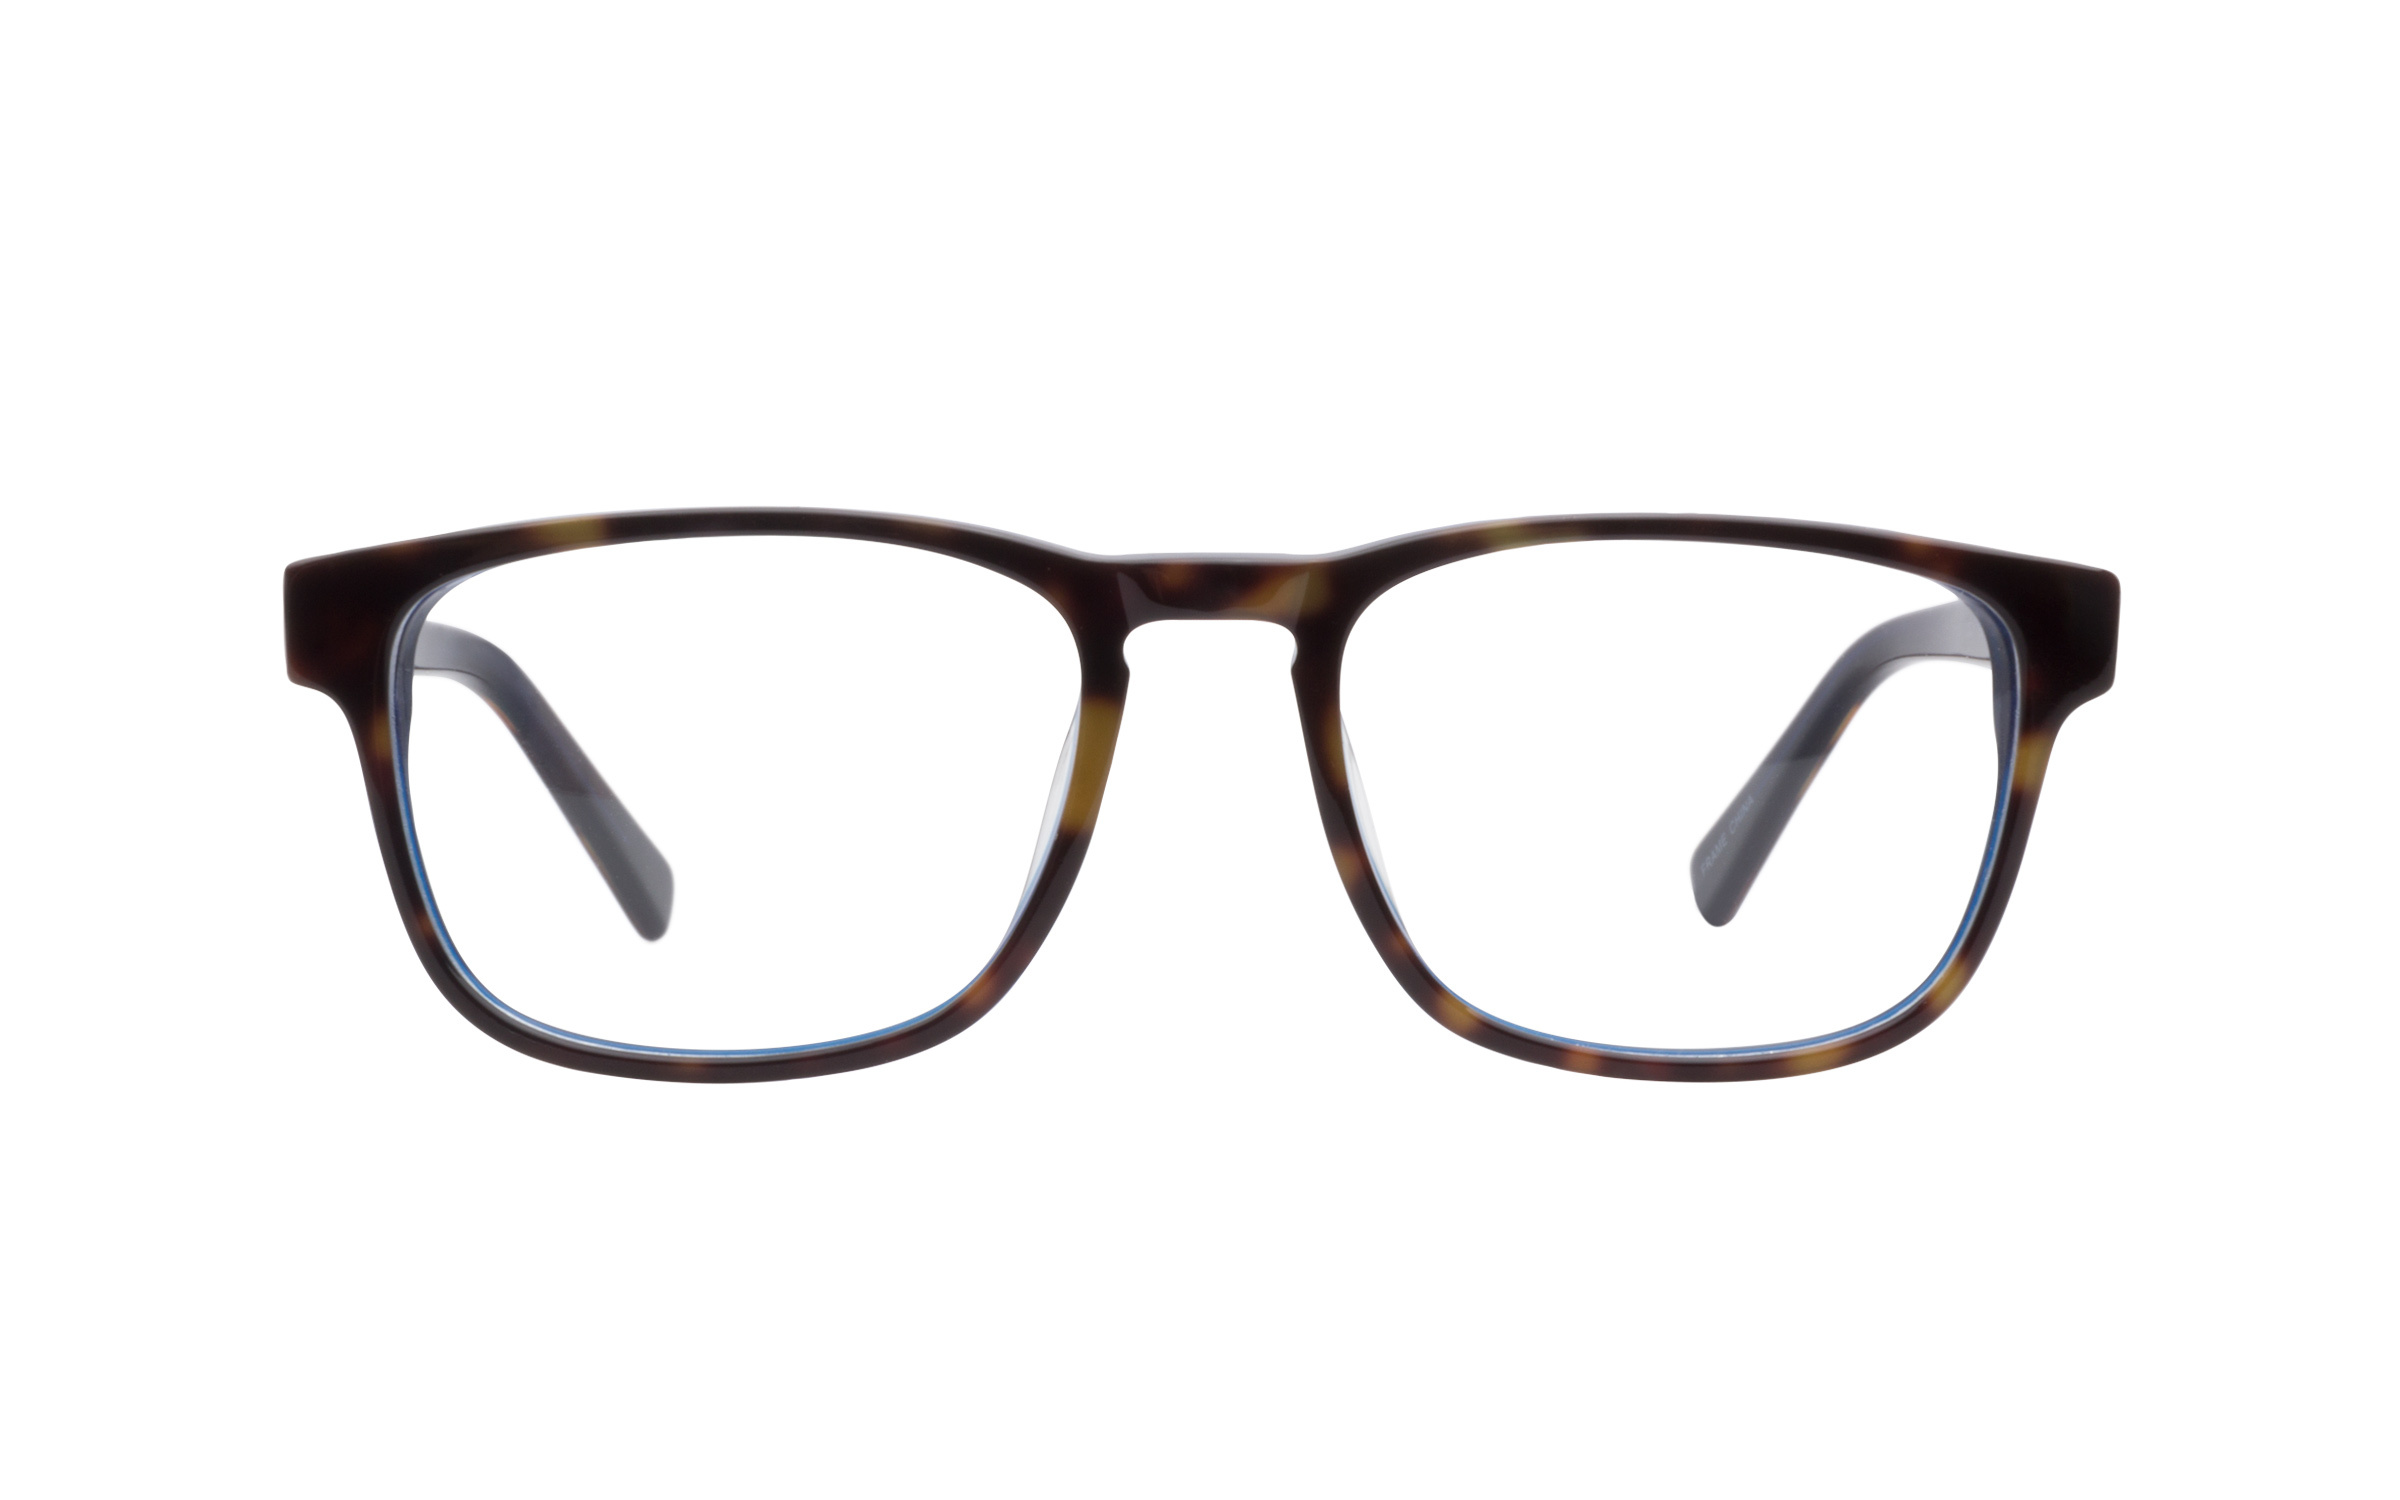 7 for All Mankind Glasses Vintage Tortoise Online Clearly